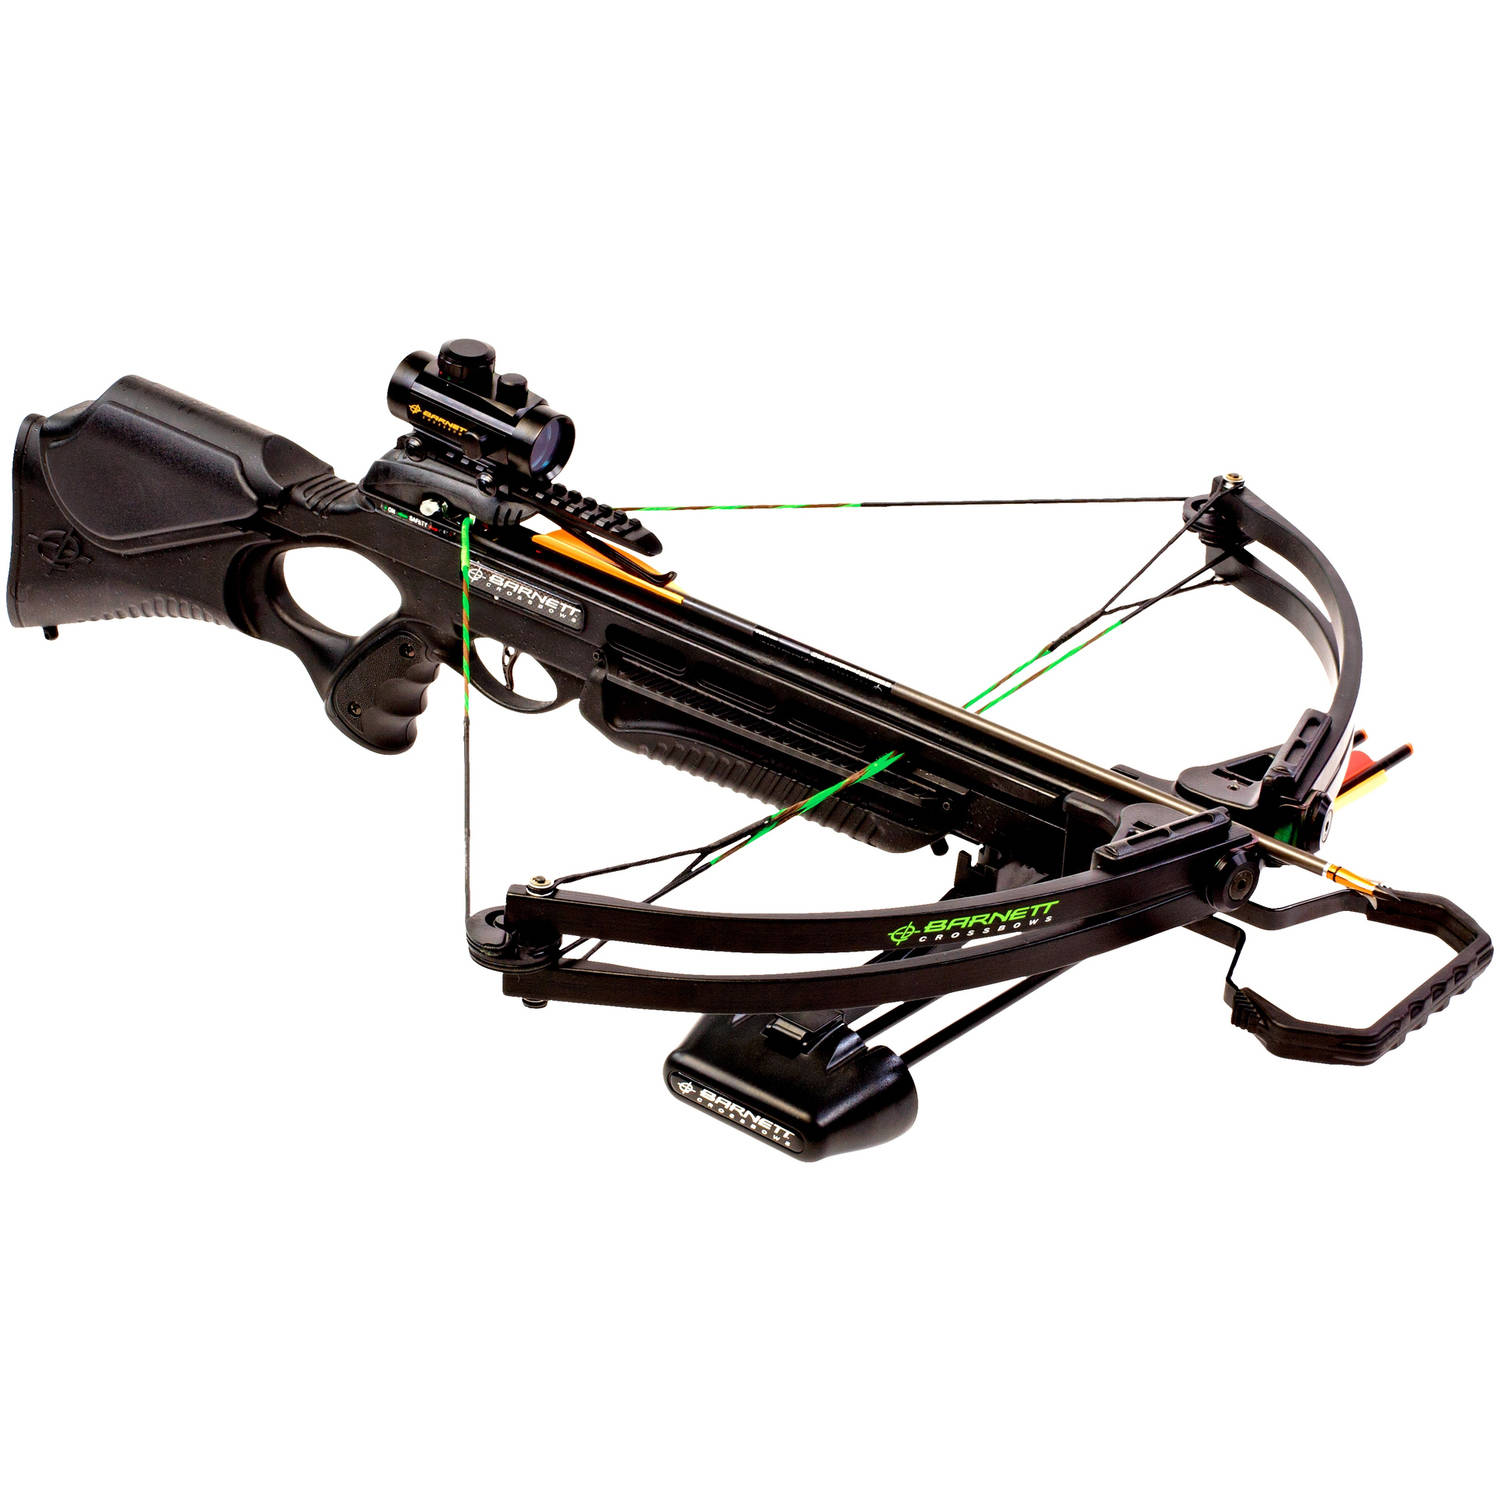 Barnett Wildcat C5 Crossbow Package with Velocity Speed Assembly